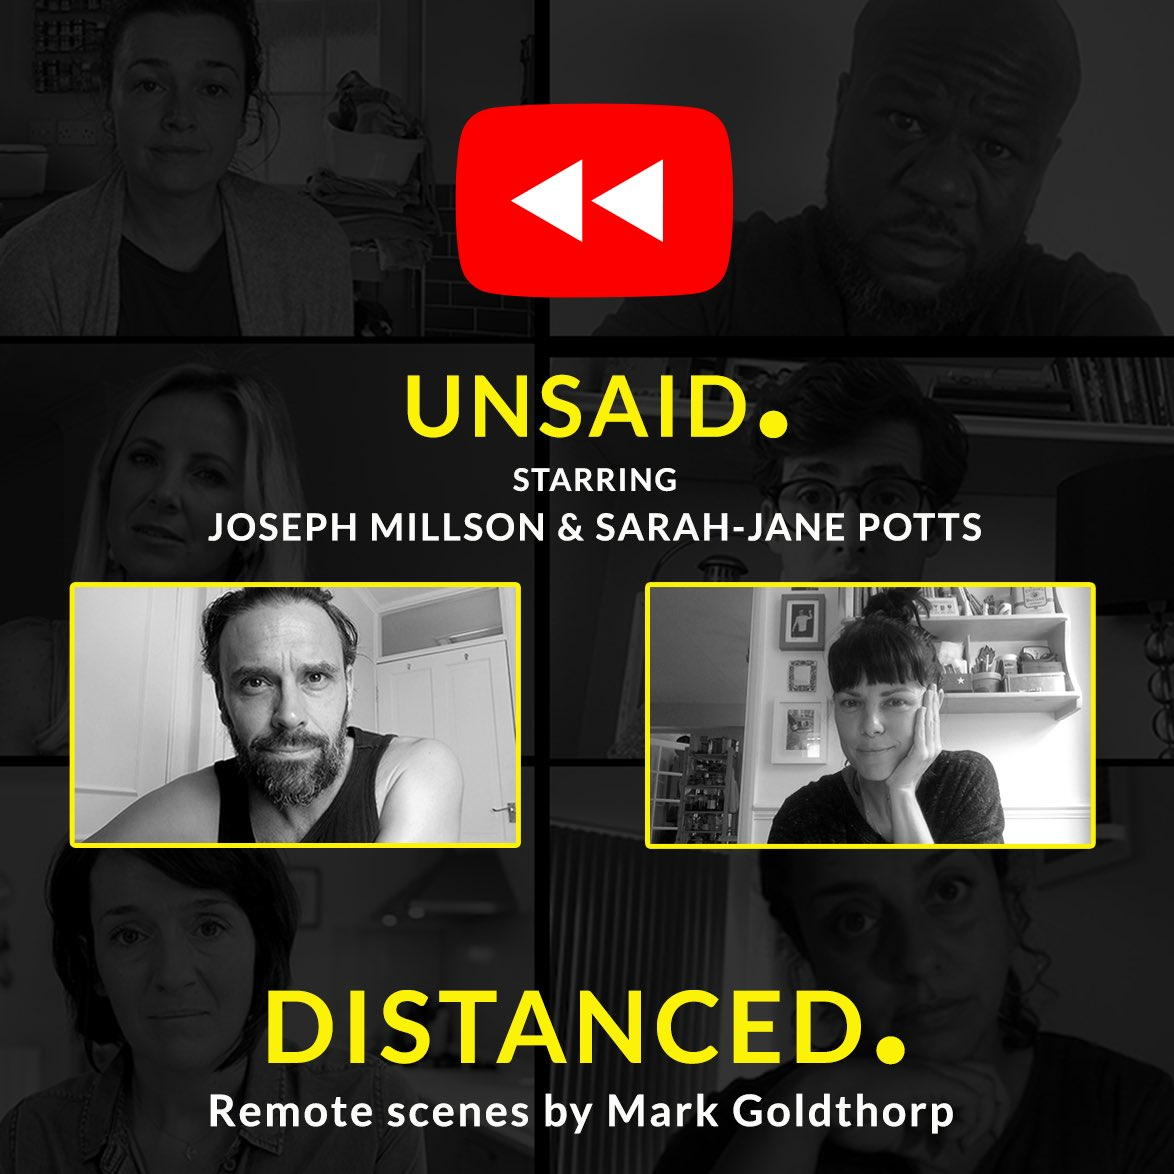 REWIND WEEK ⏮ Click to watch 👉 youtu.be/SYxe-LGOBjw All this week, we're throwing it back and re-watching one episode of series one each day! 🎞 Today it's UNSAID. Starring @josephmillson & @RealPottsSJ Don't forget to like the video and subscribe to our channel!